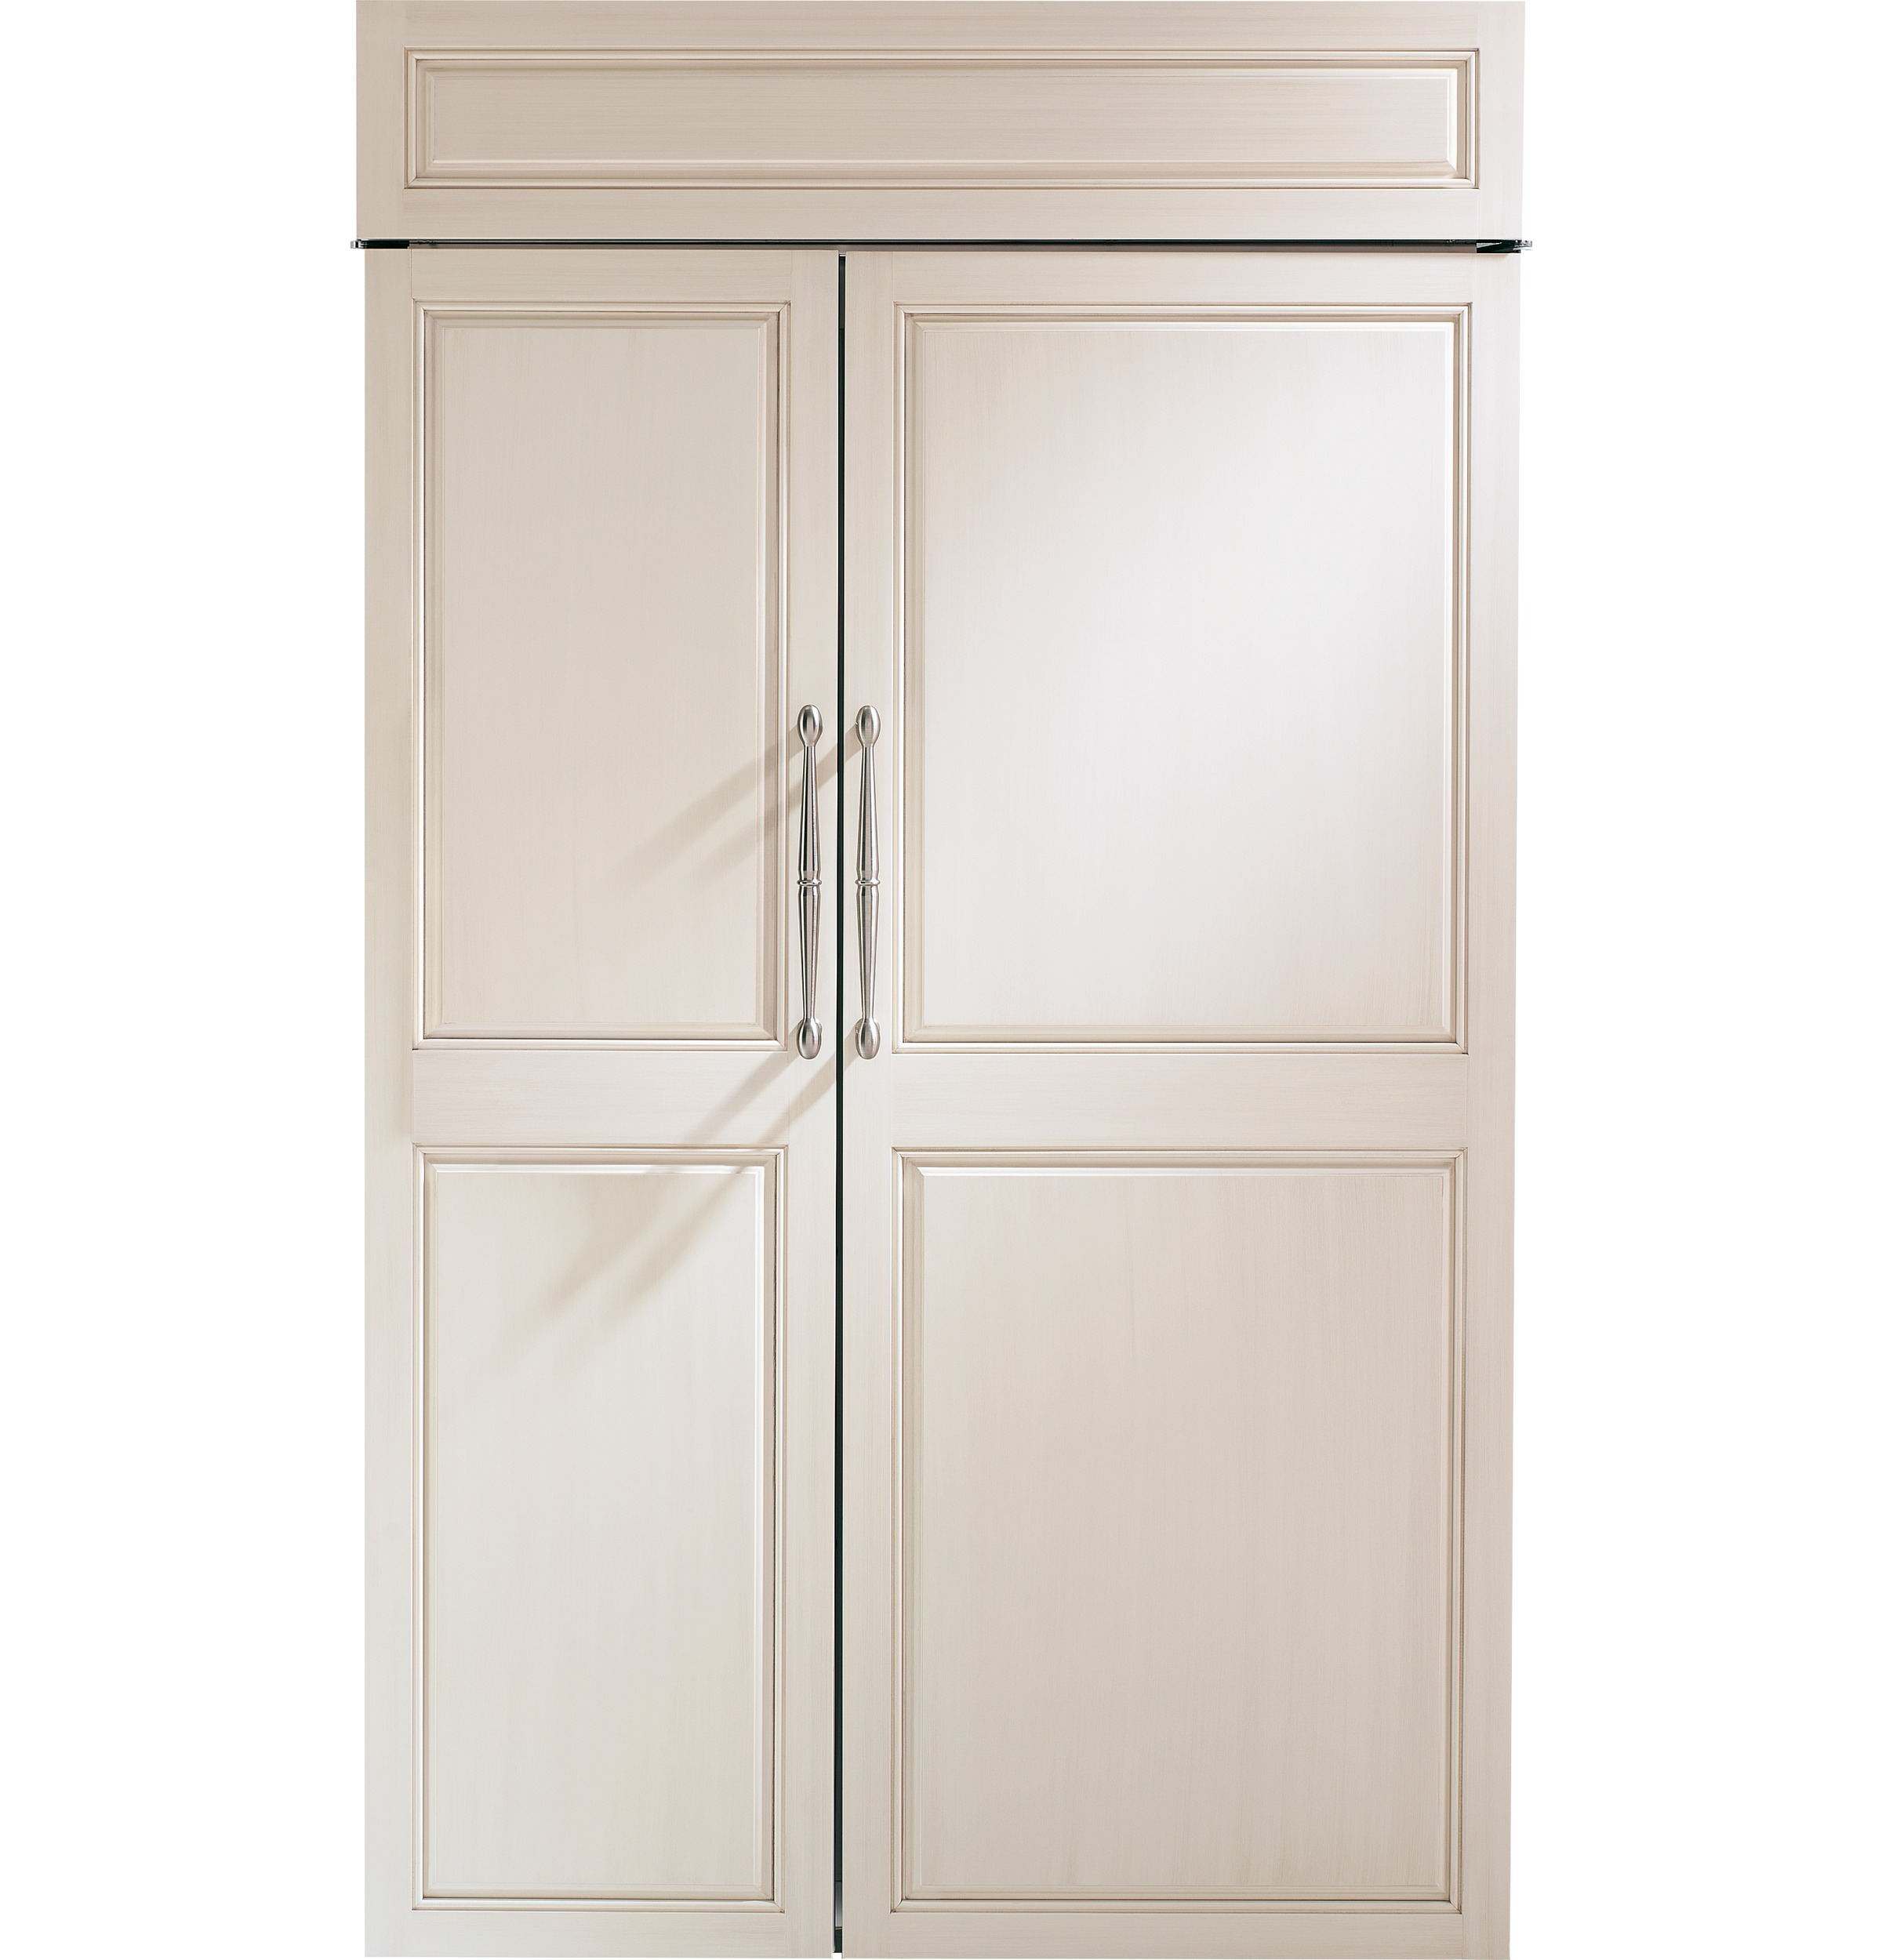 "Monogram Monogram 48"" Built-In Side-by-Side Refrigerator"